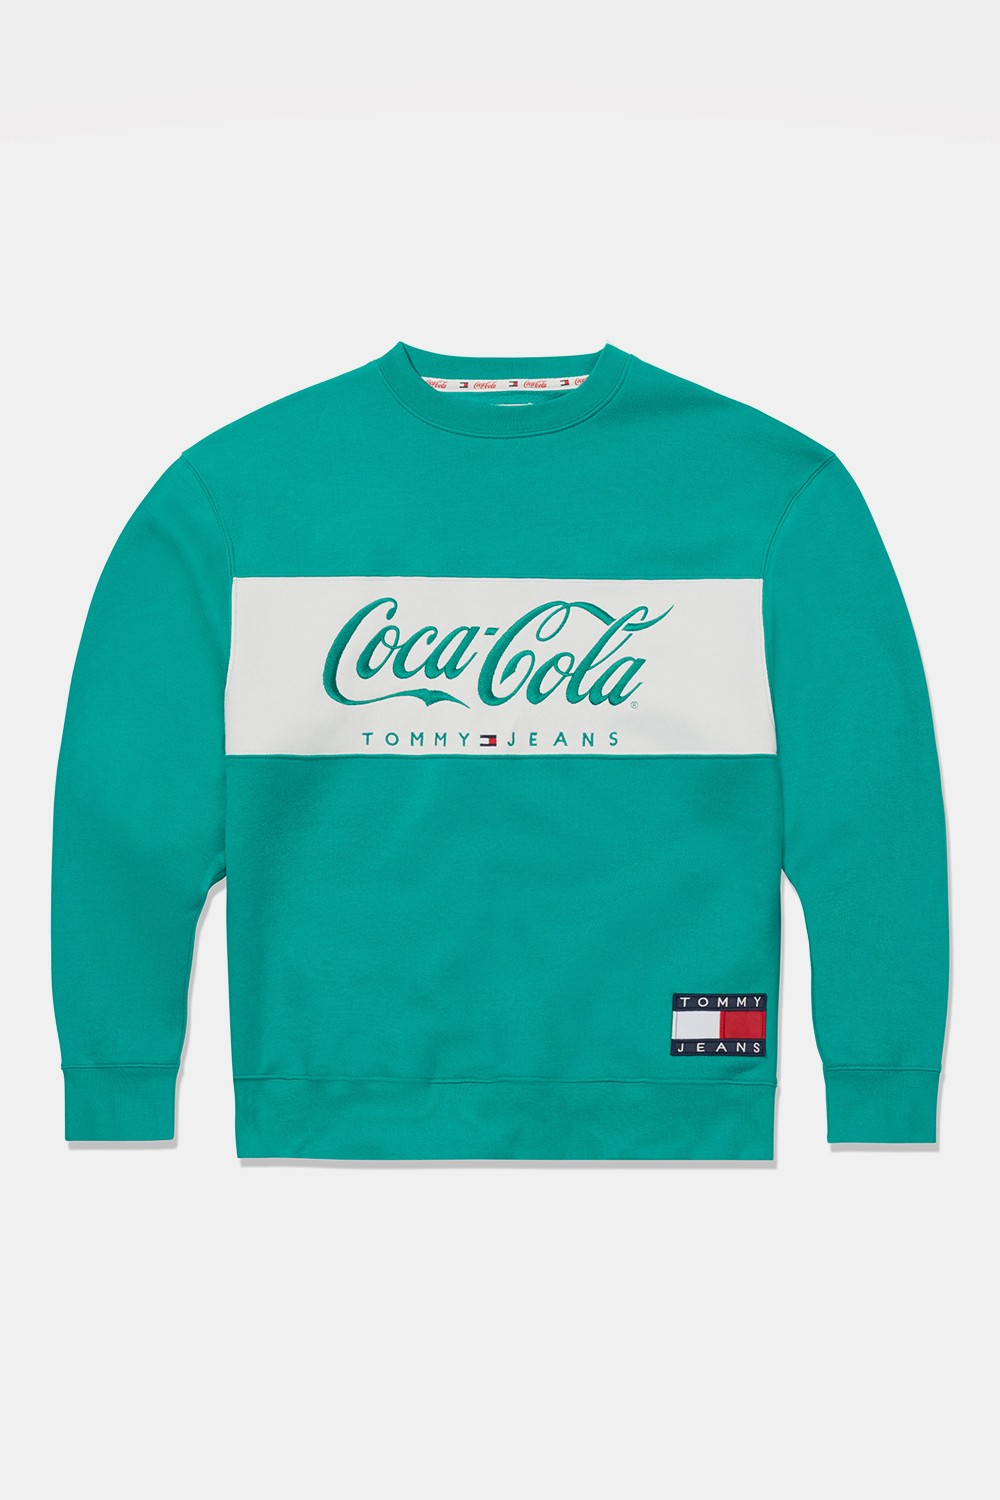 ae50b5a0b Tommy Jeans x Coca-Cola SS19 Capsule Collection | The Source